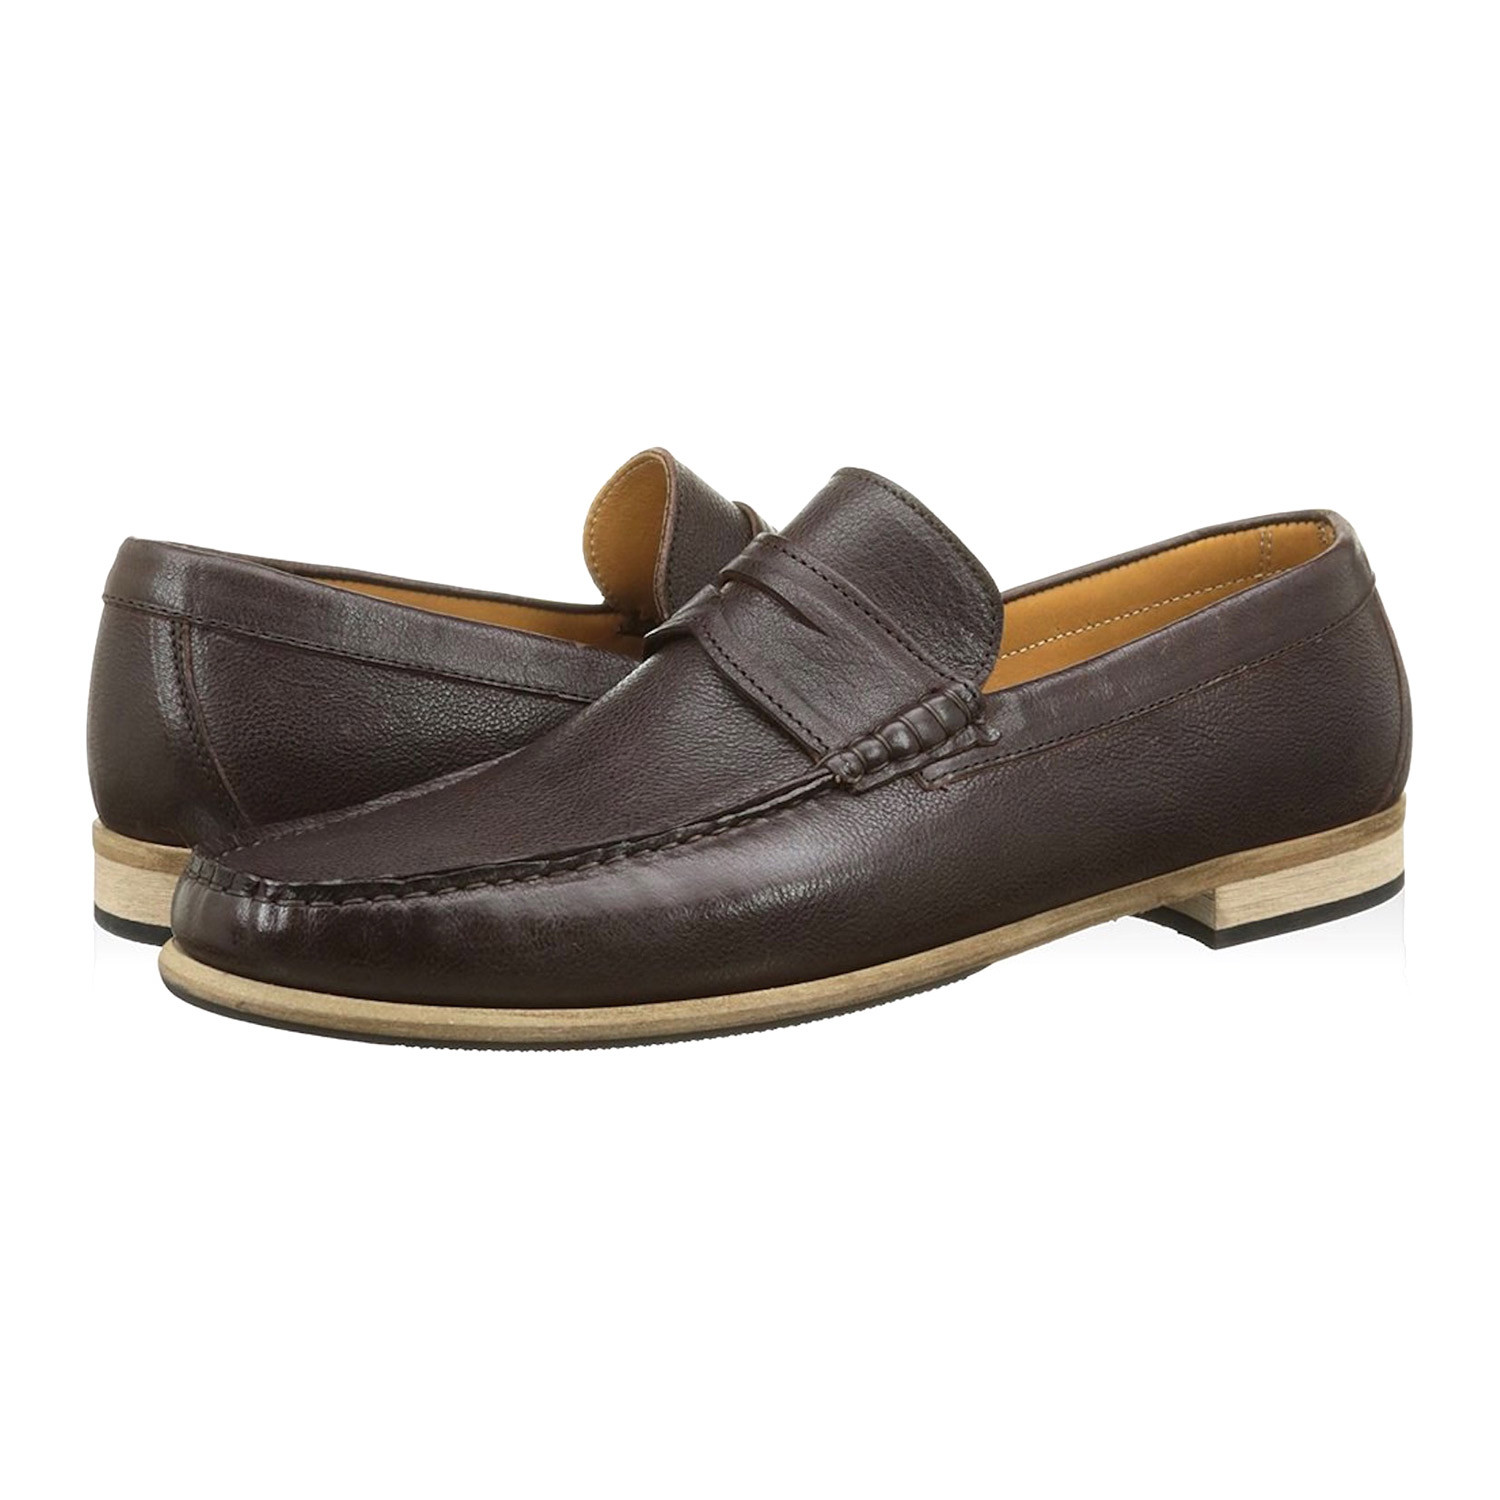 promo code 46202 55819 Alexander Trend // Leather Penny Loafer // Dark Brown (Euro ...